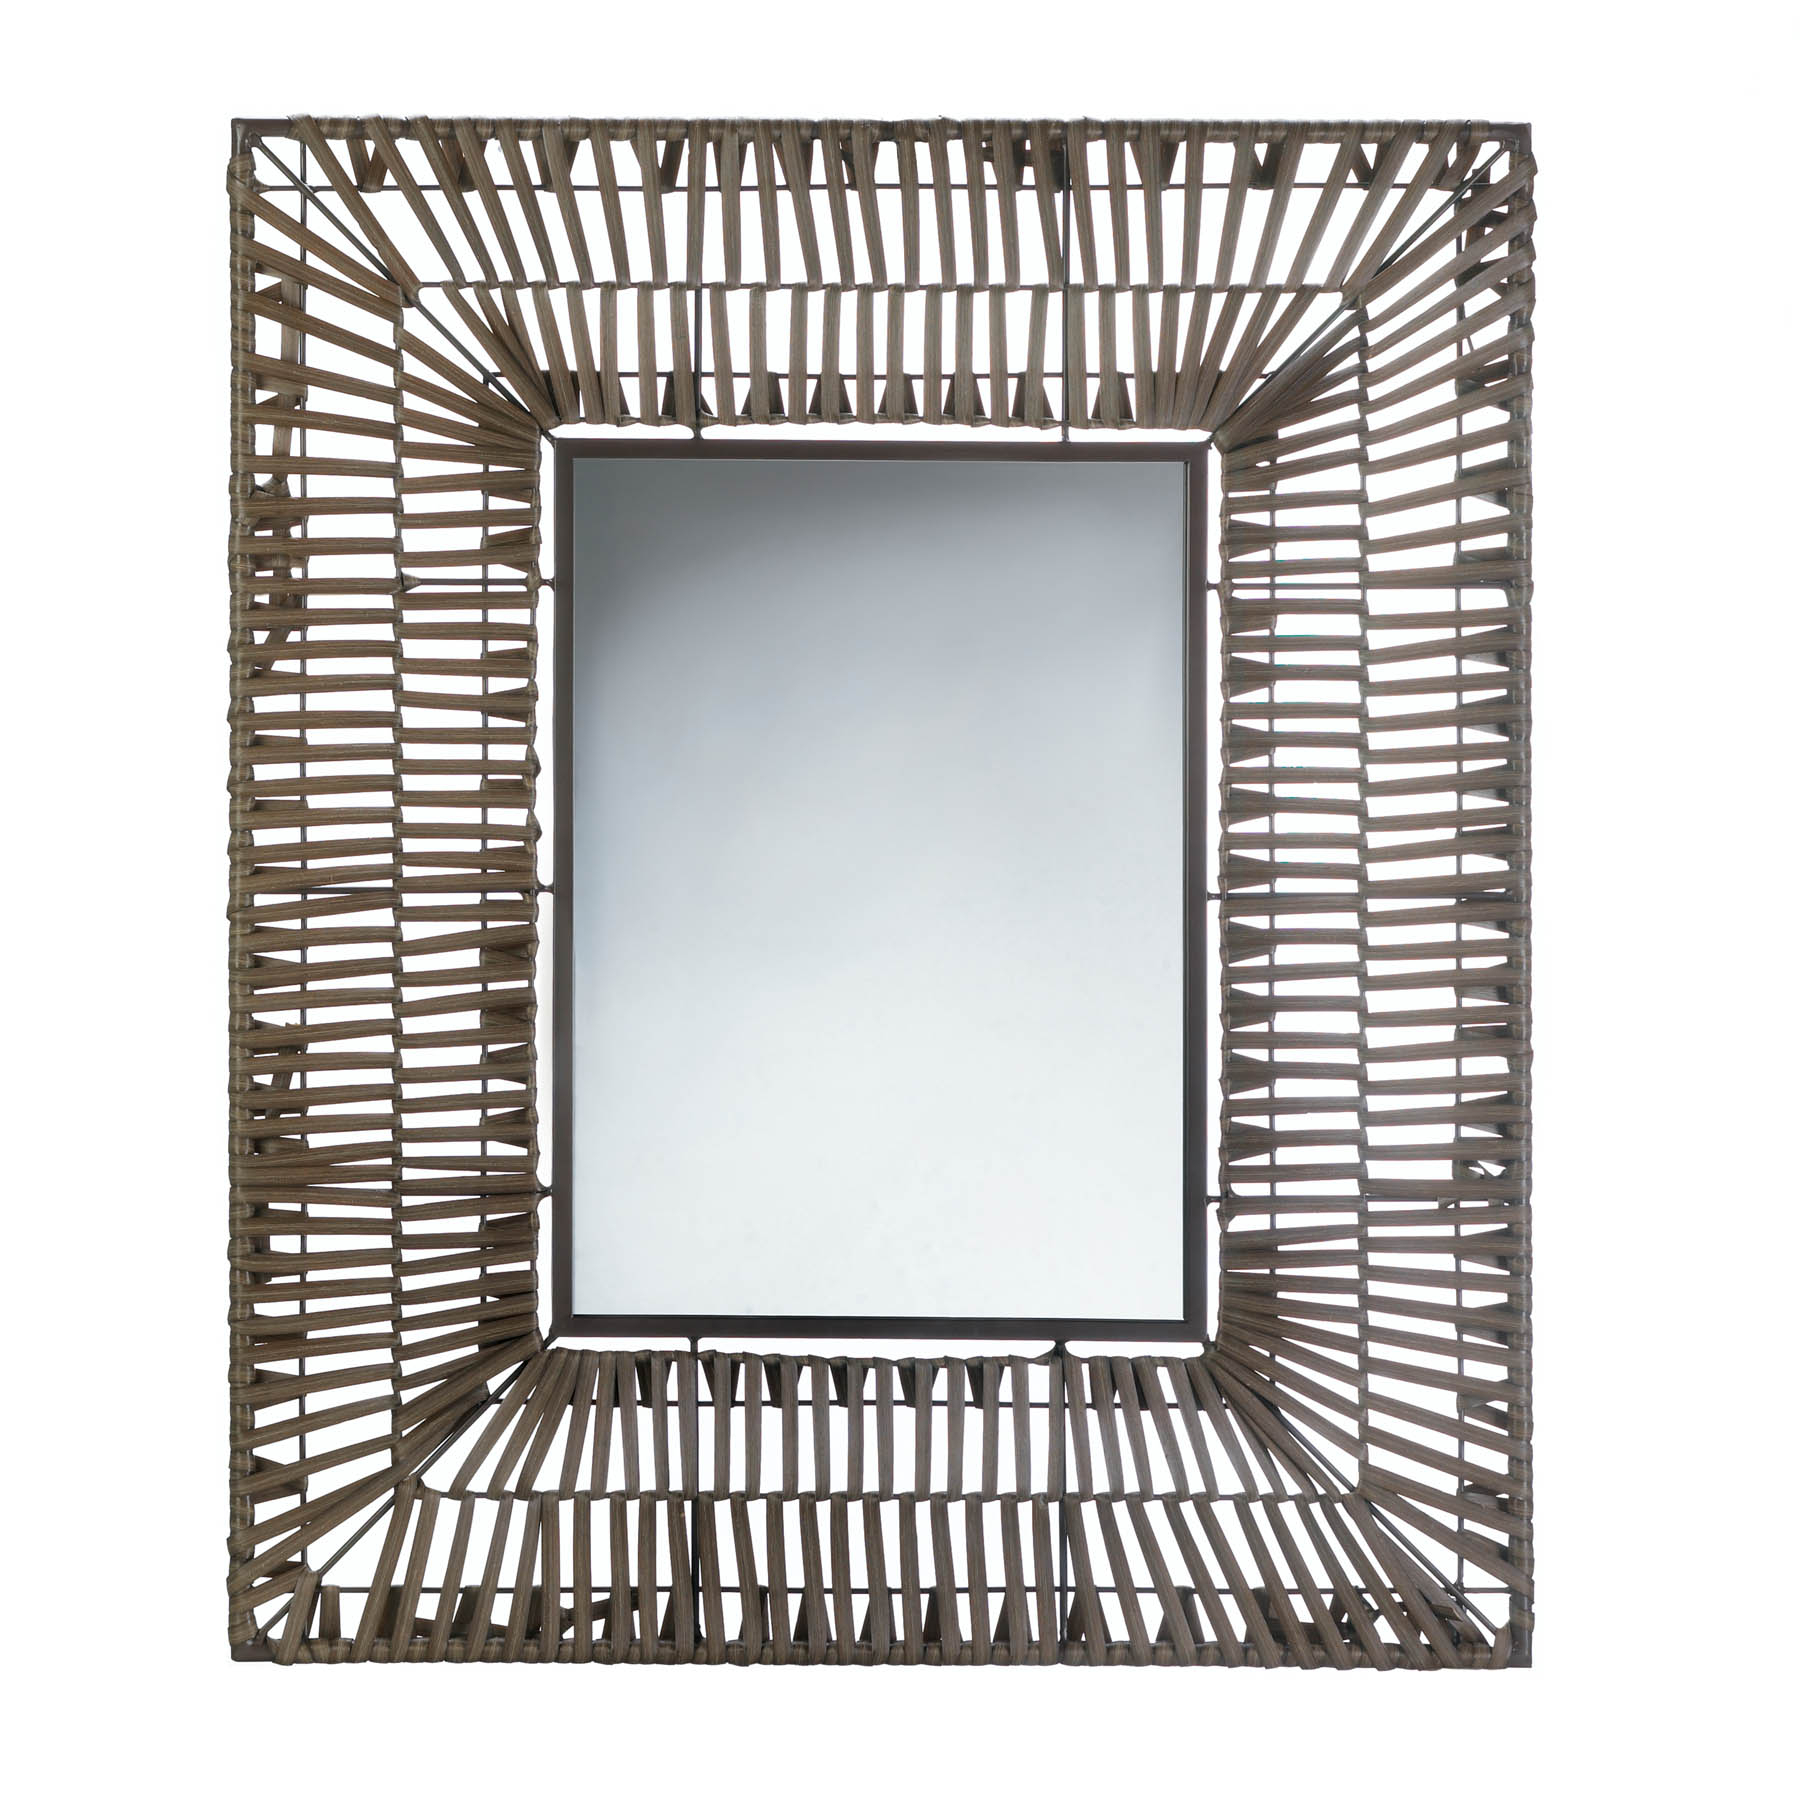 Details About Accent Plus – Faux Rattan Rectangular Wall Mirror Throughout Rectangle Accent Wall Mirrors (View 20 of 20)